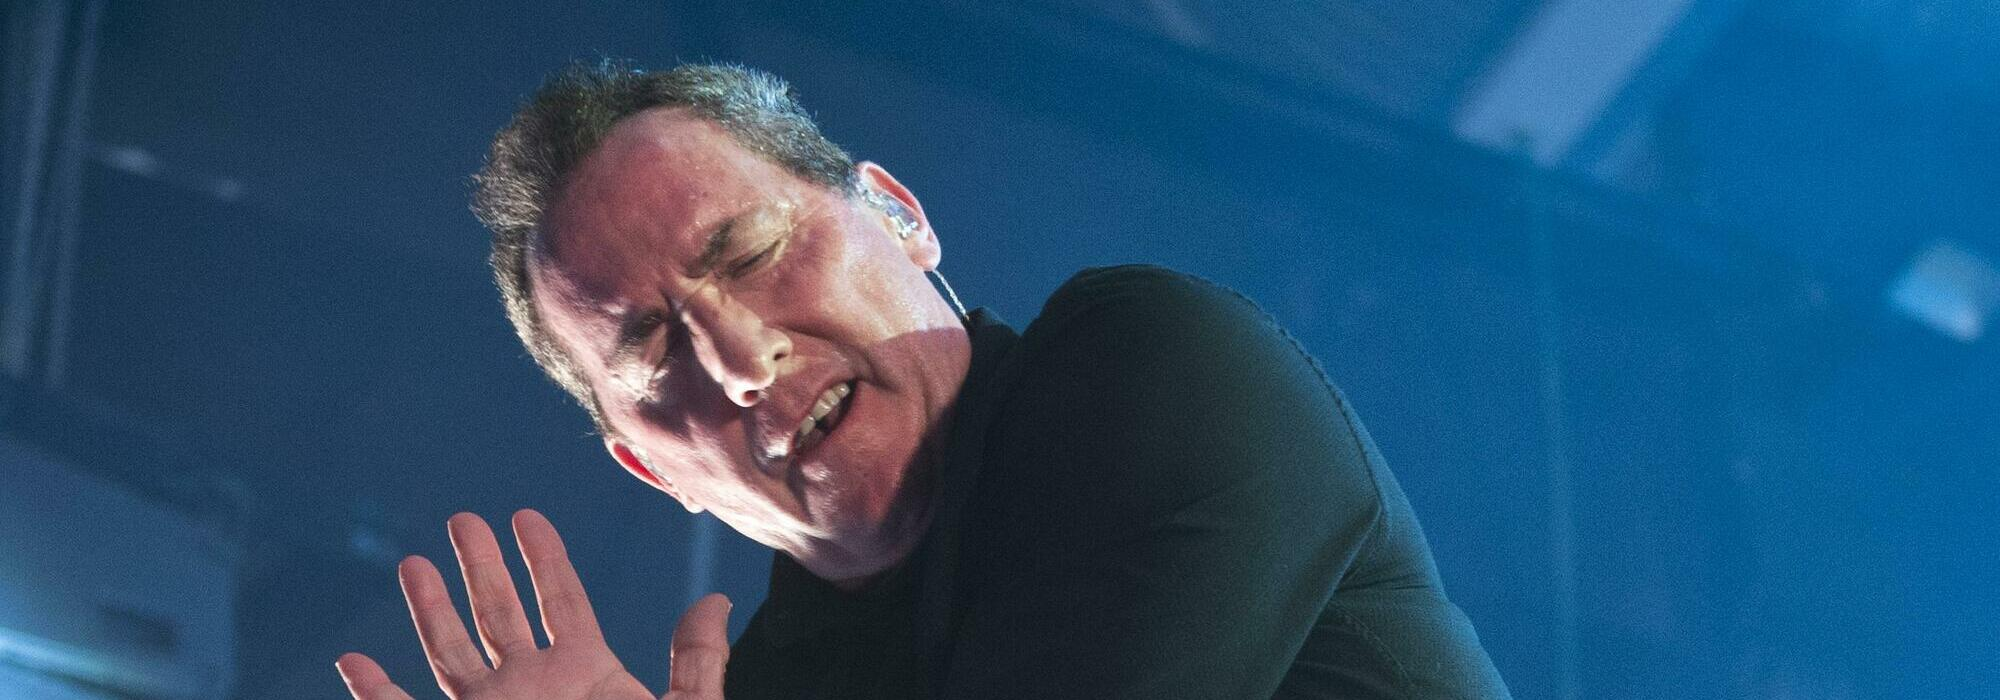 A OMD live event